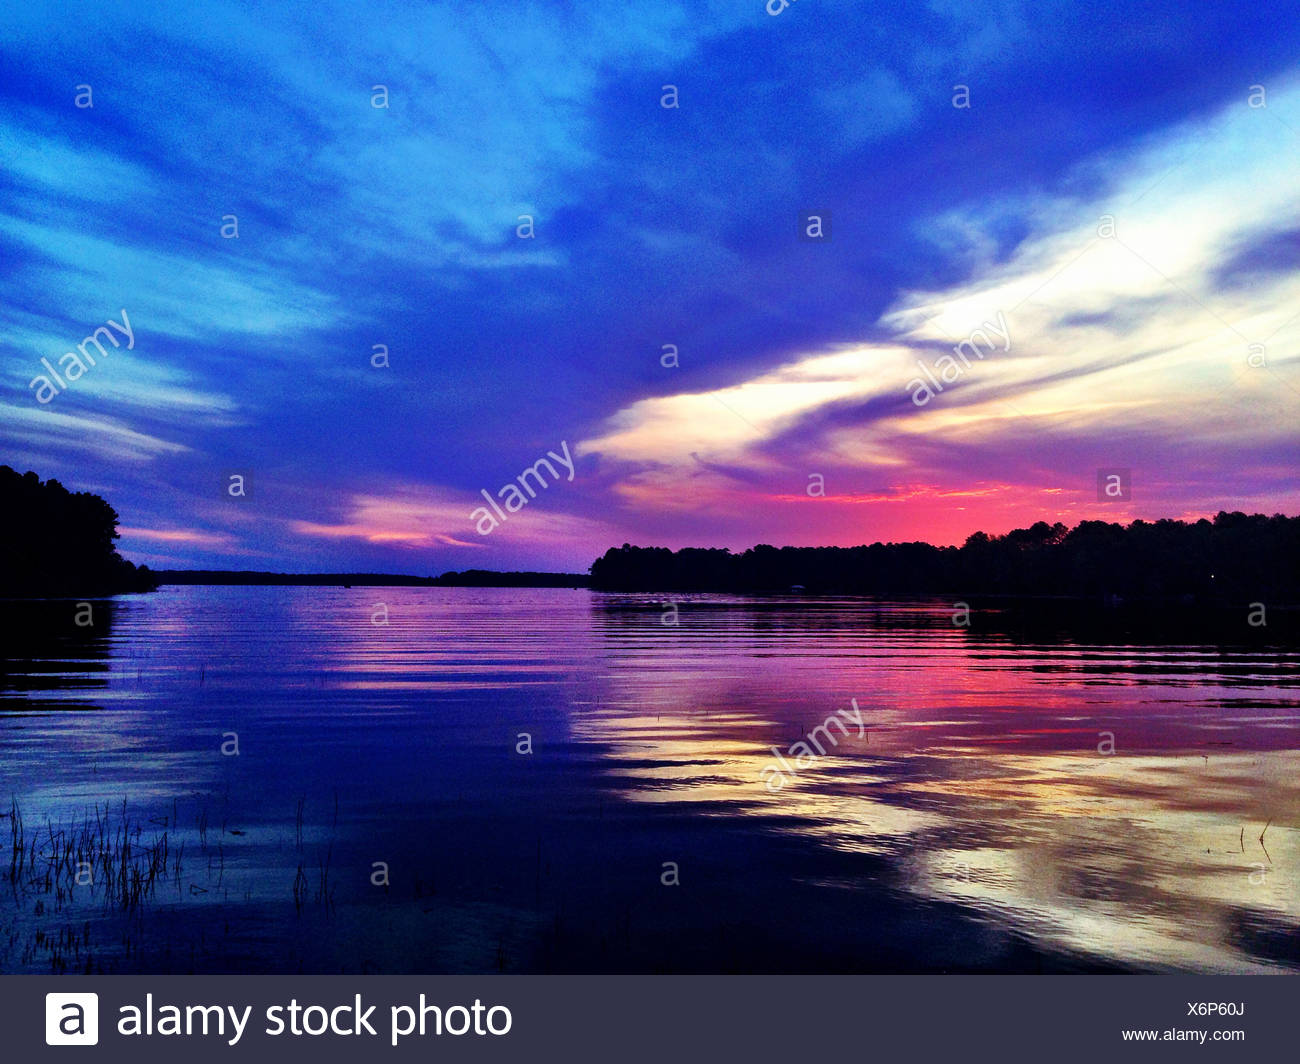 USA, Cloudy sunset on Toledo Bend - Stock Image